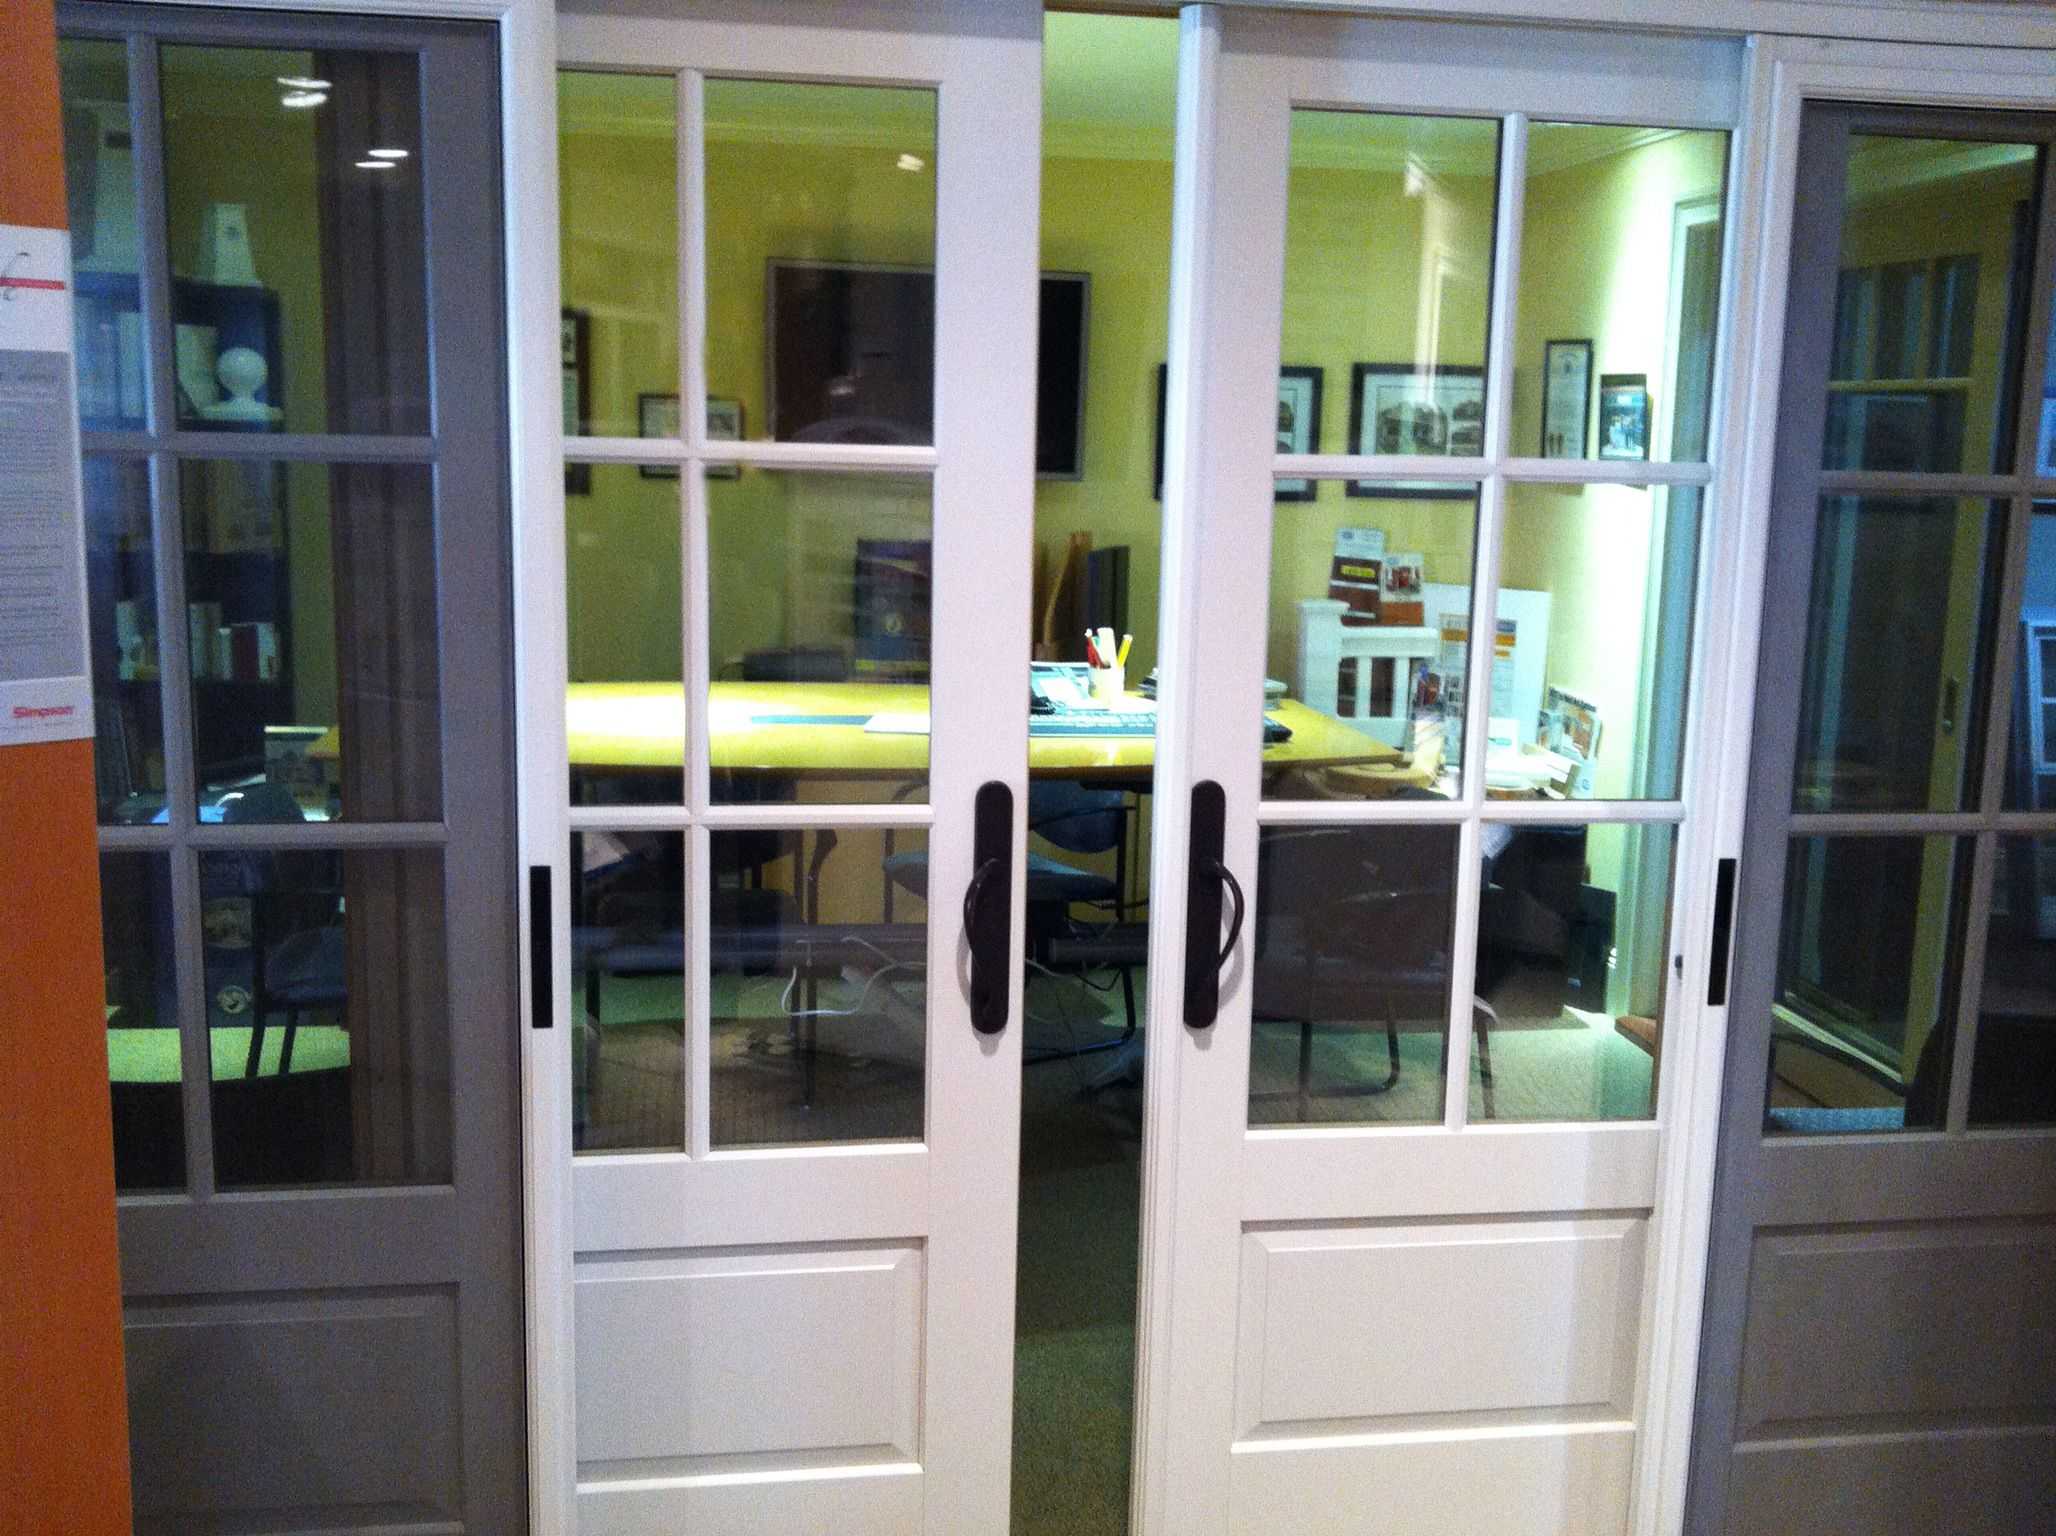 The marvin ultimate bi parting sliding french door in our for Marvin ultimate swinging screen door